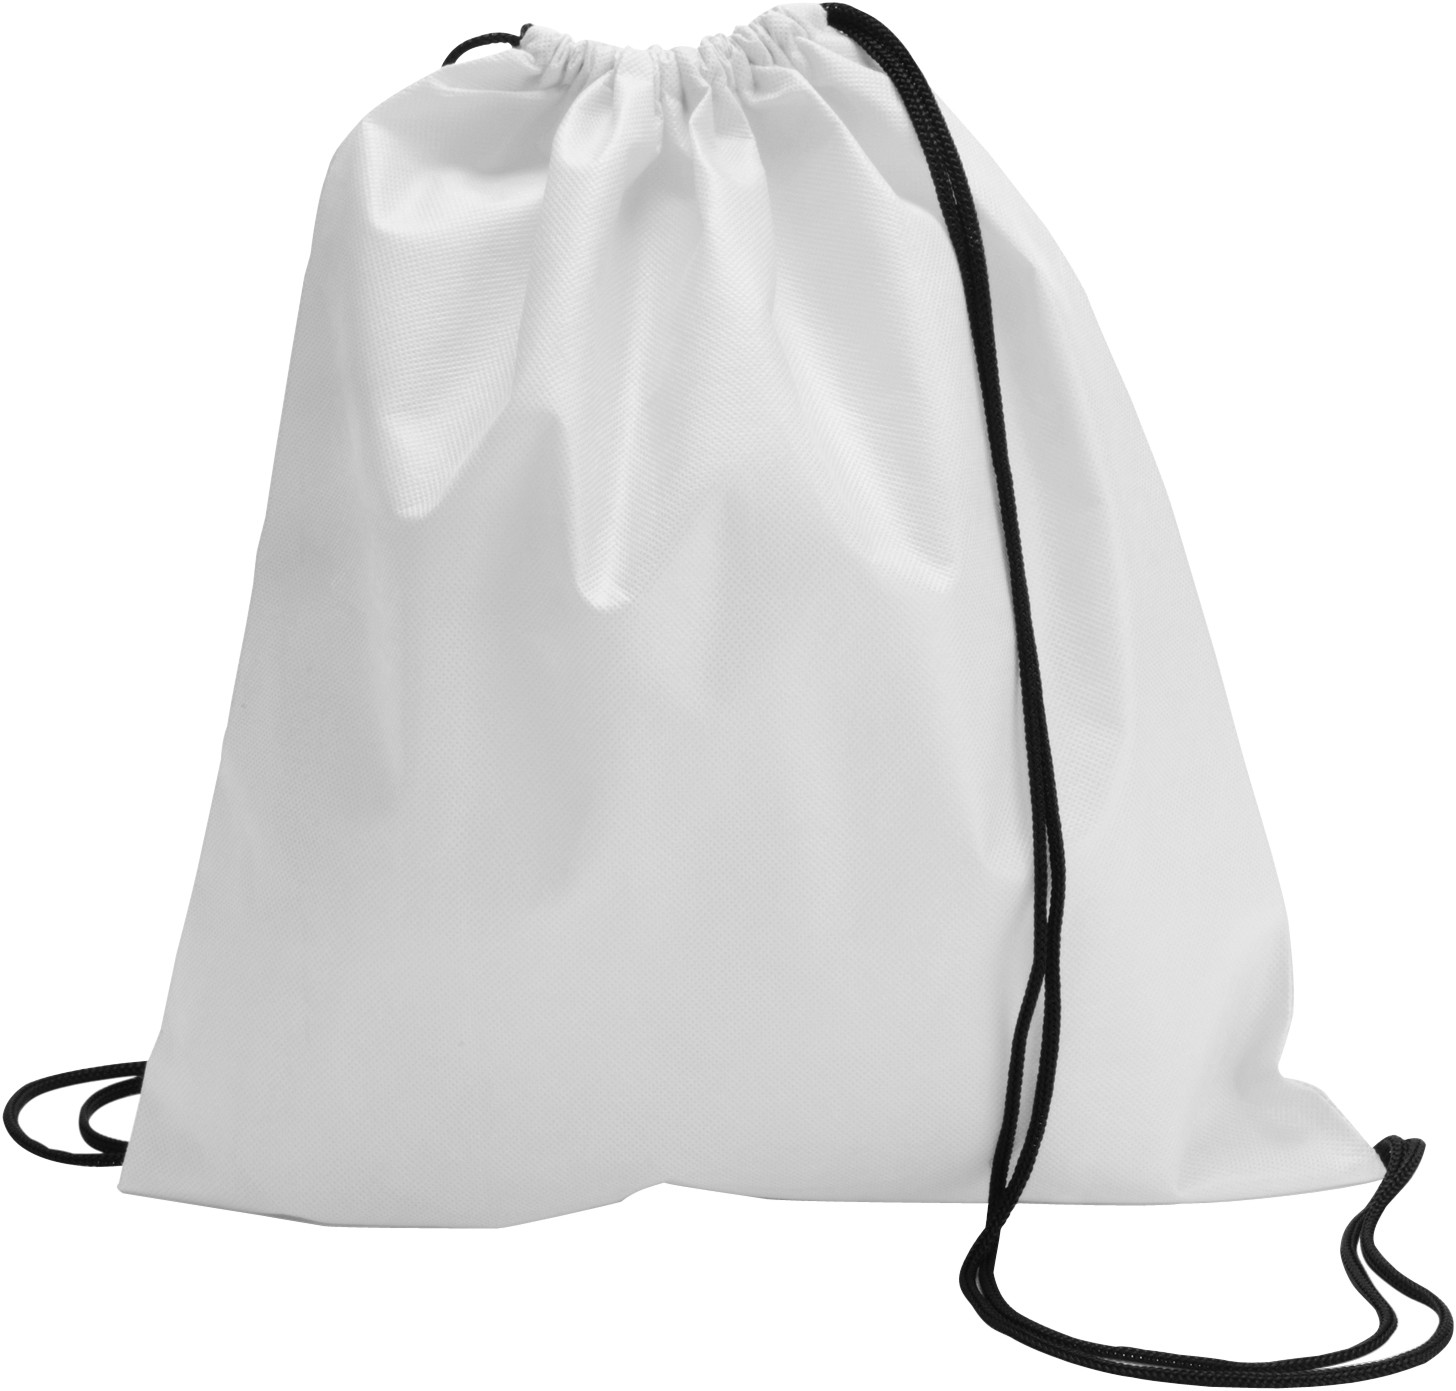 Drawstring bag, non woven, White (backpack) - Reklámajándék.hu Ltd.